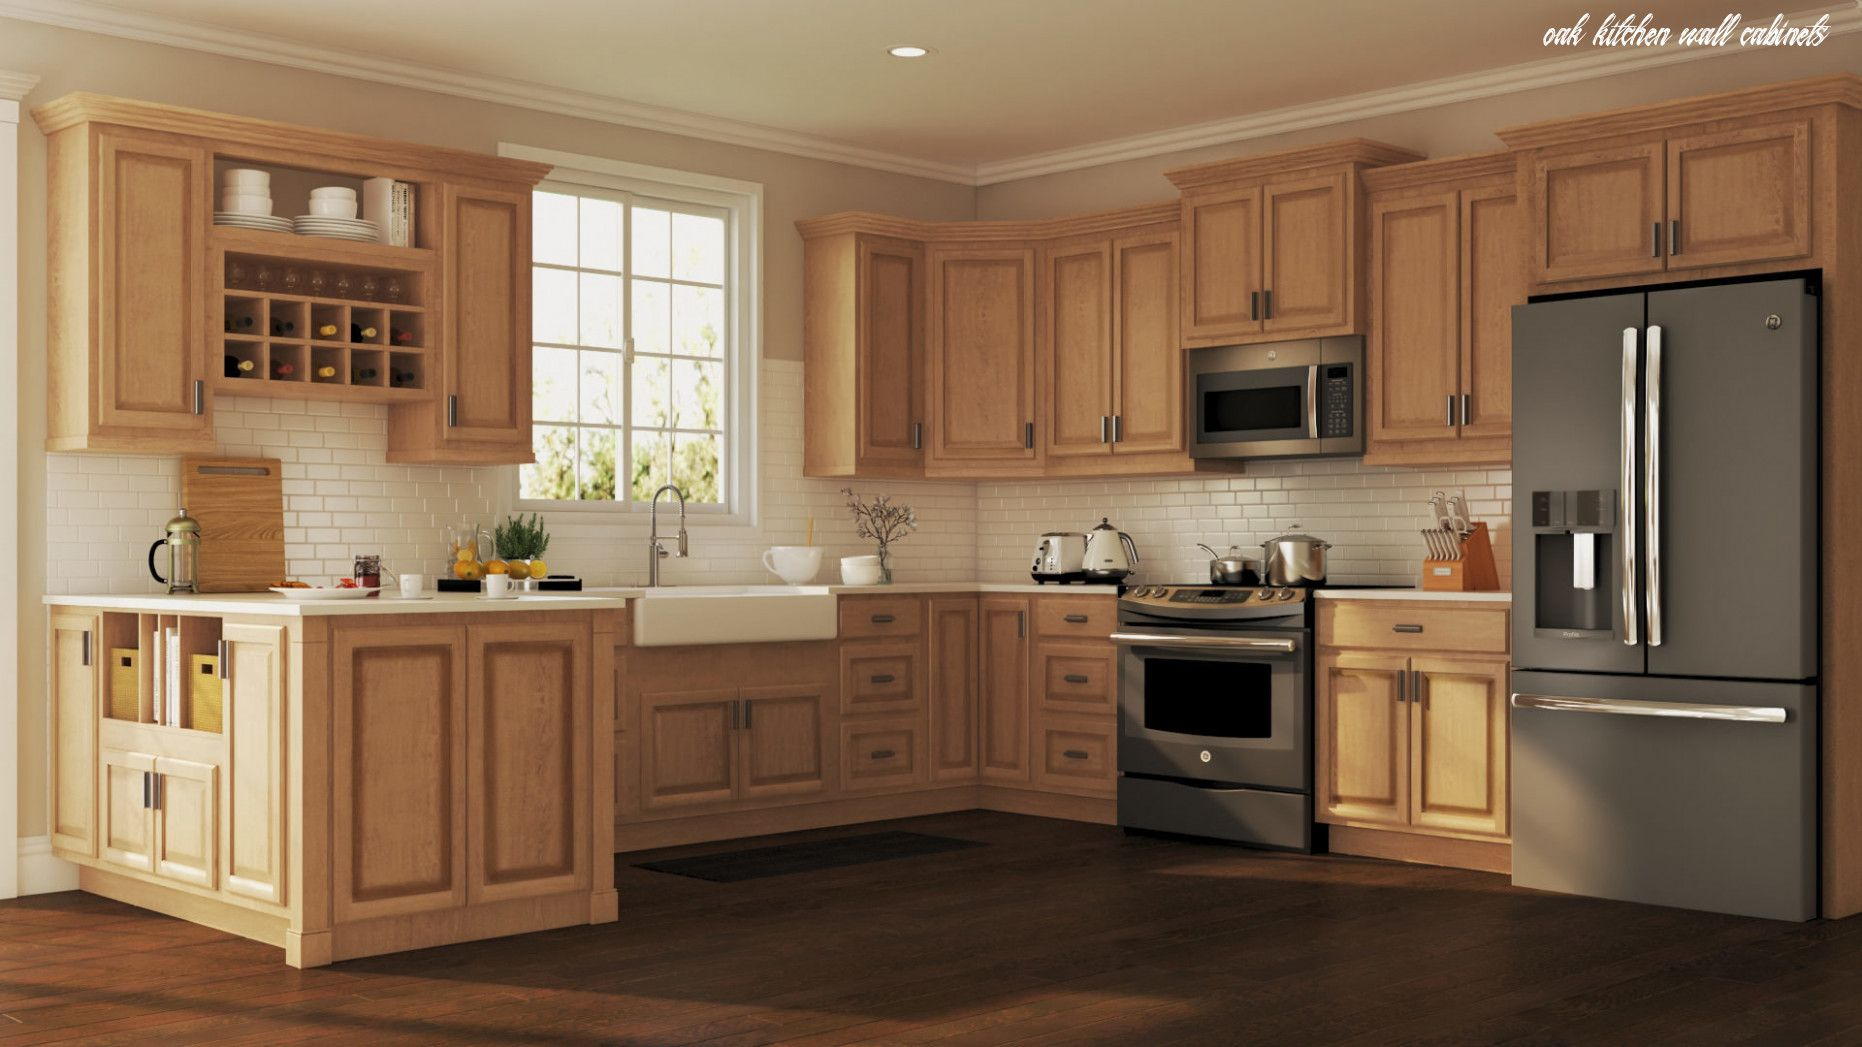 10 Ways On How To Prepare For Oak Kitchen Wall Cabinets In 2020 Used Kitchen Cabinets Kitchen Cabinet Styles Home Depot Kitchen